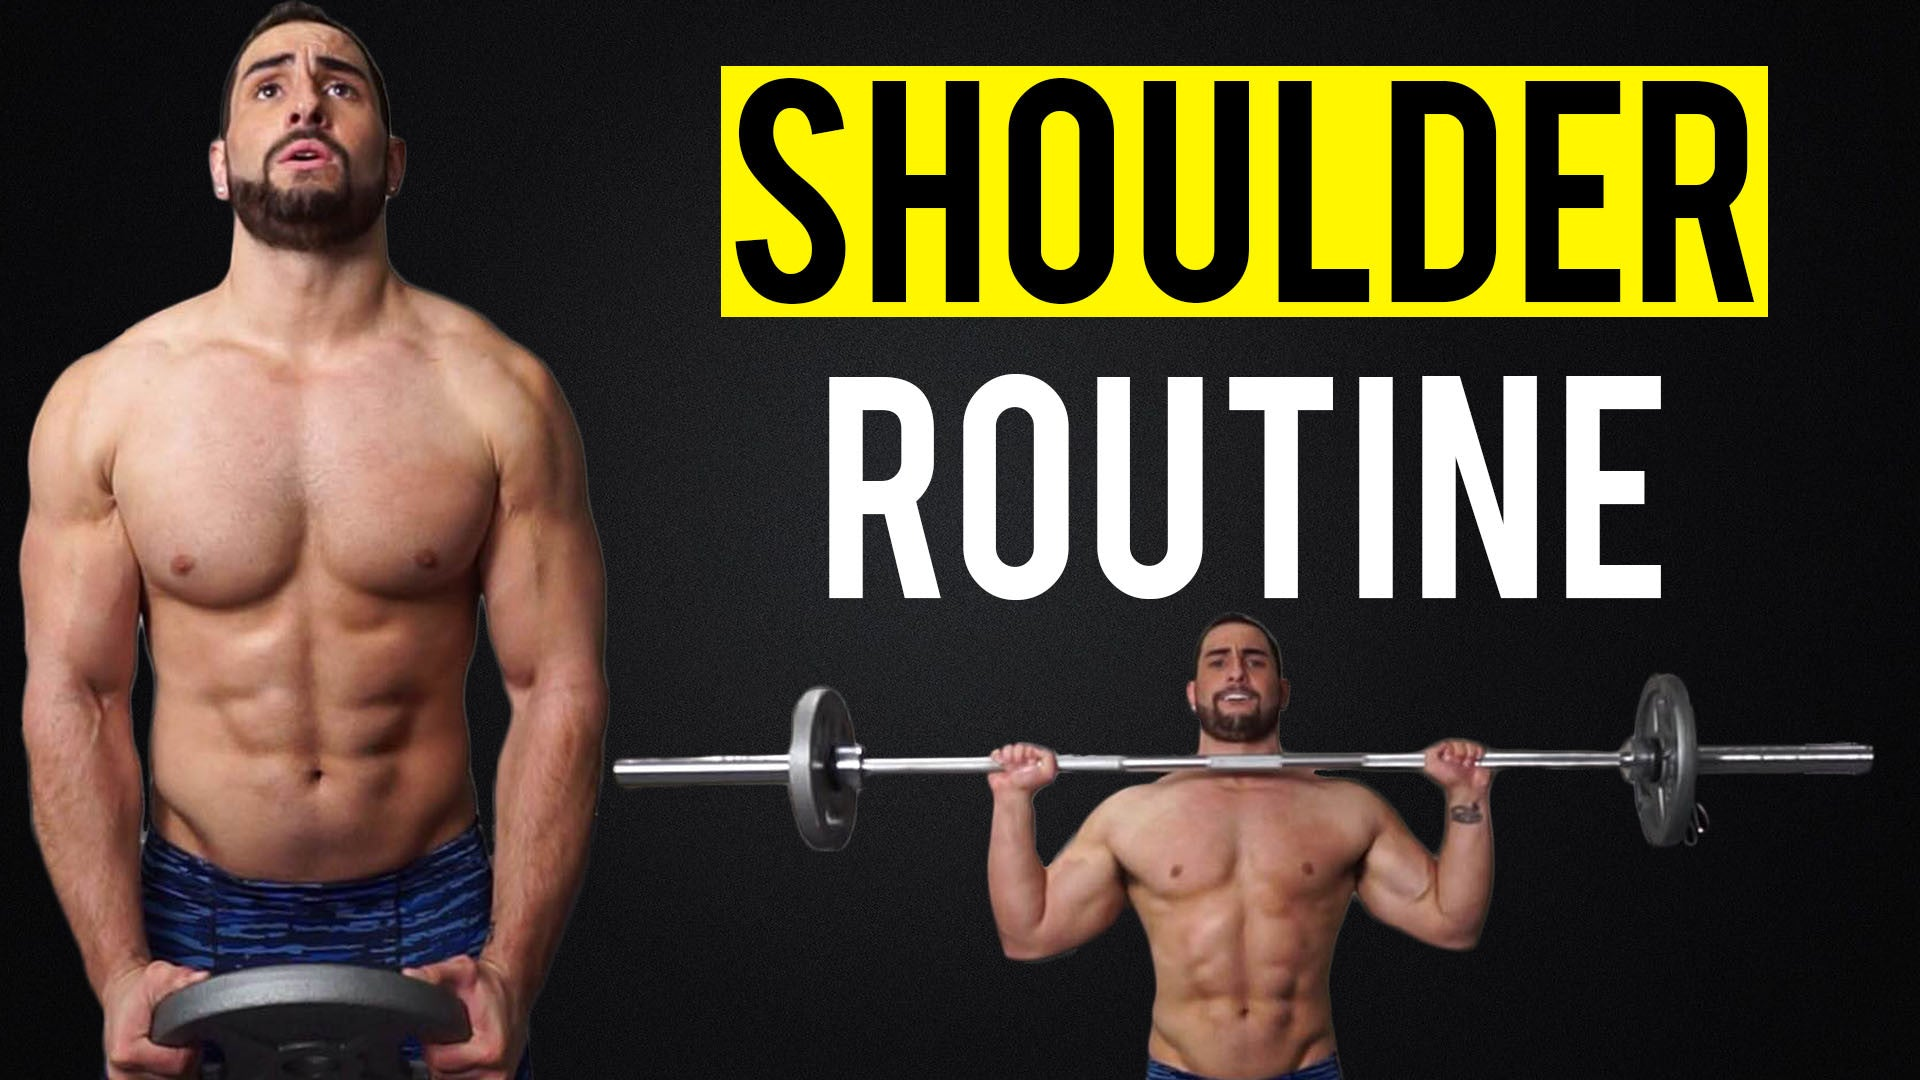 How to increase the shoulders 30